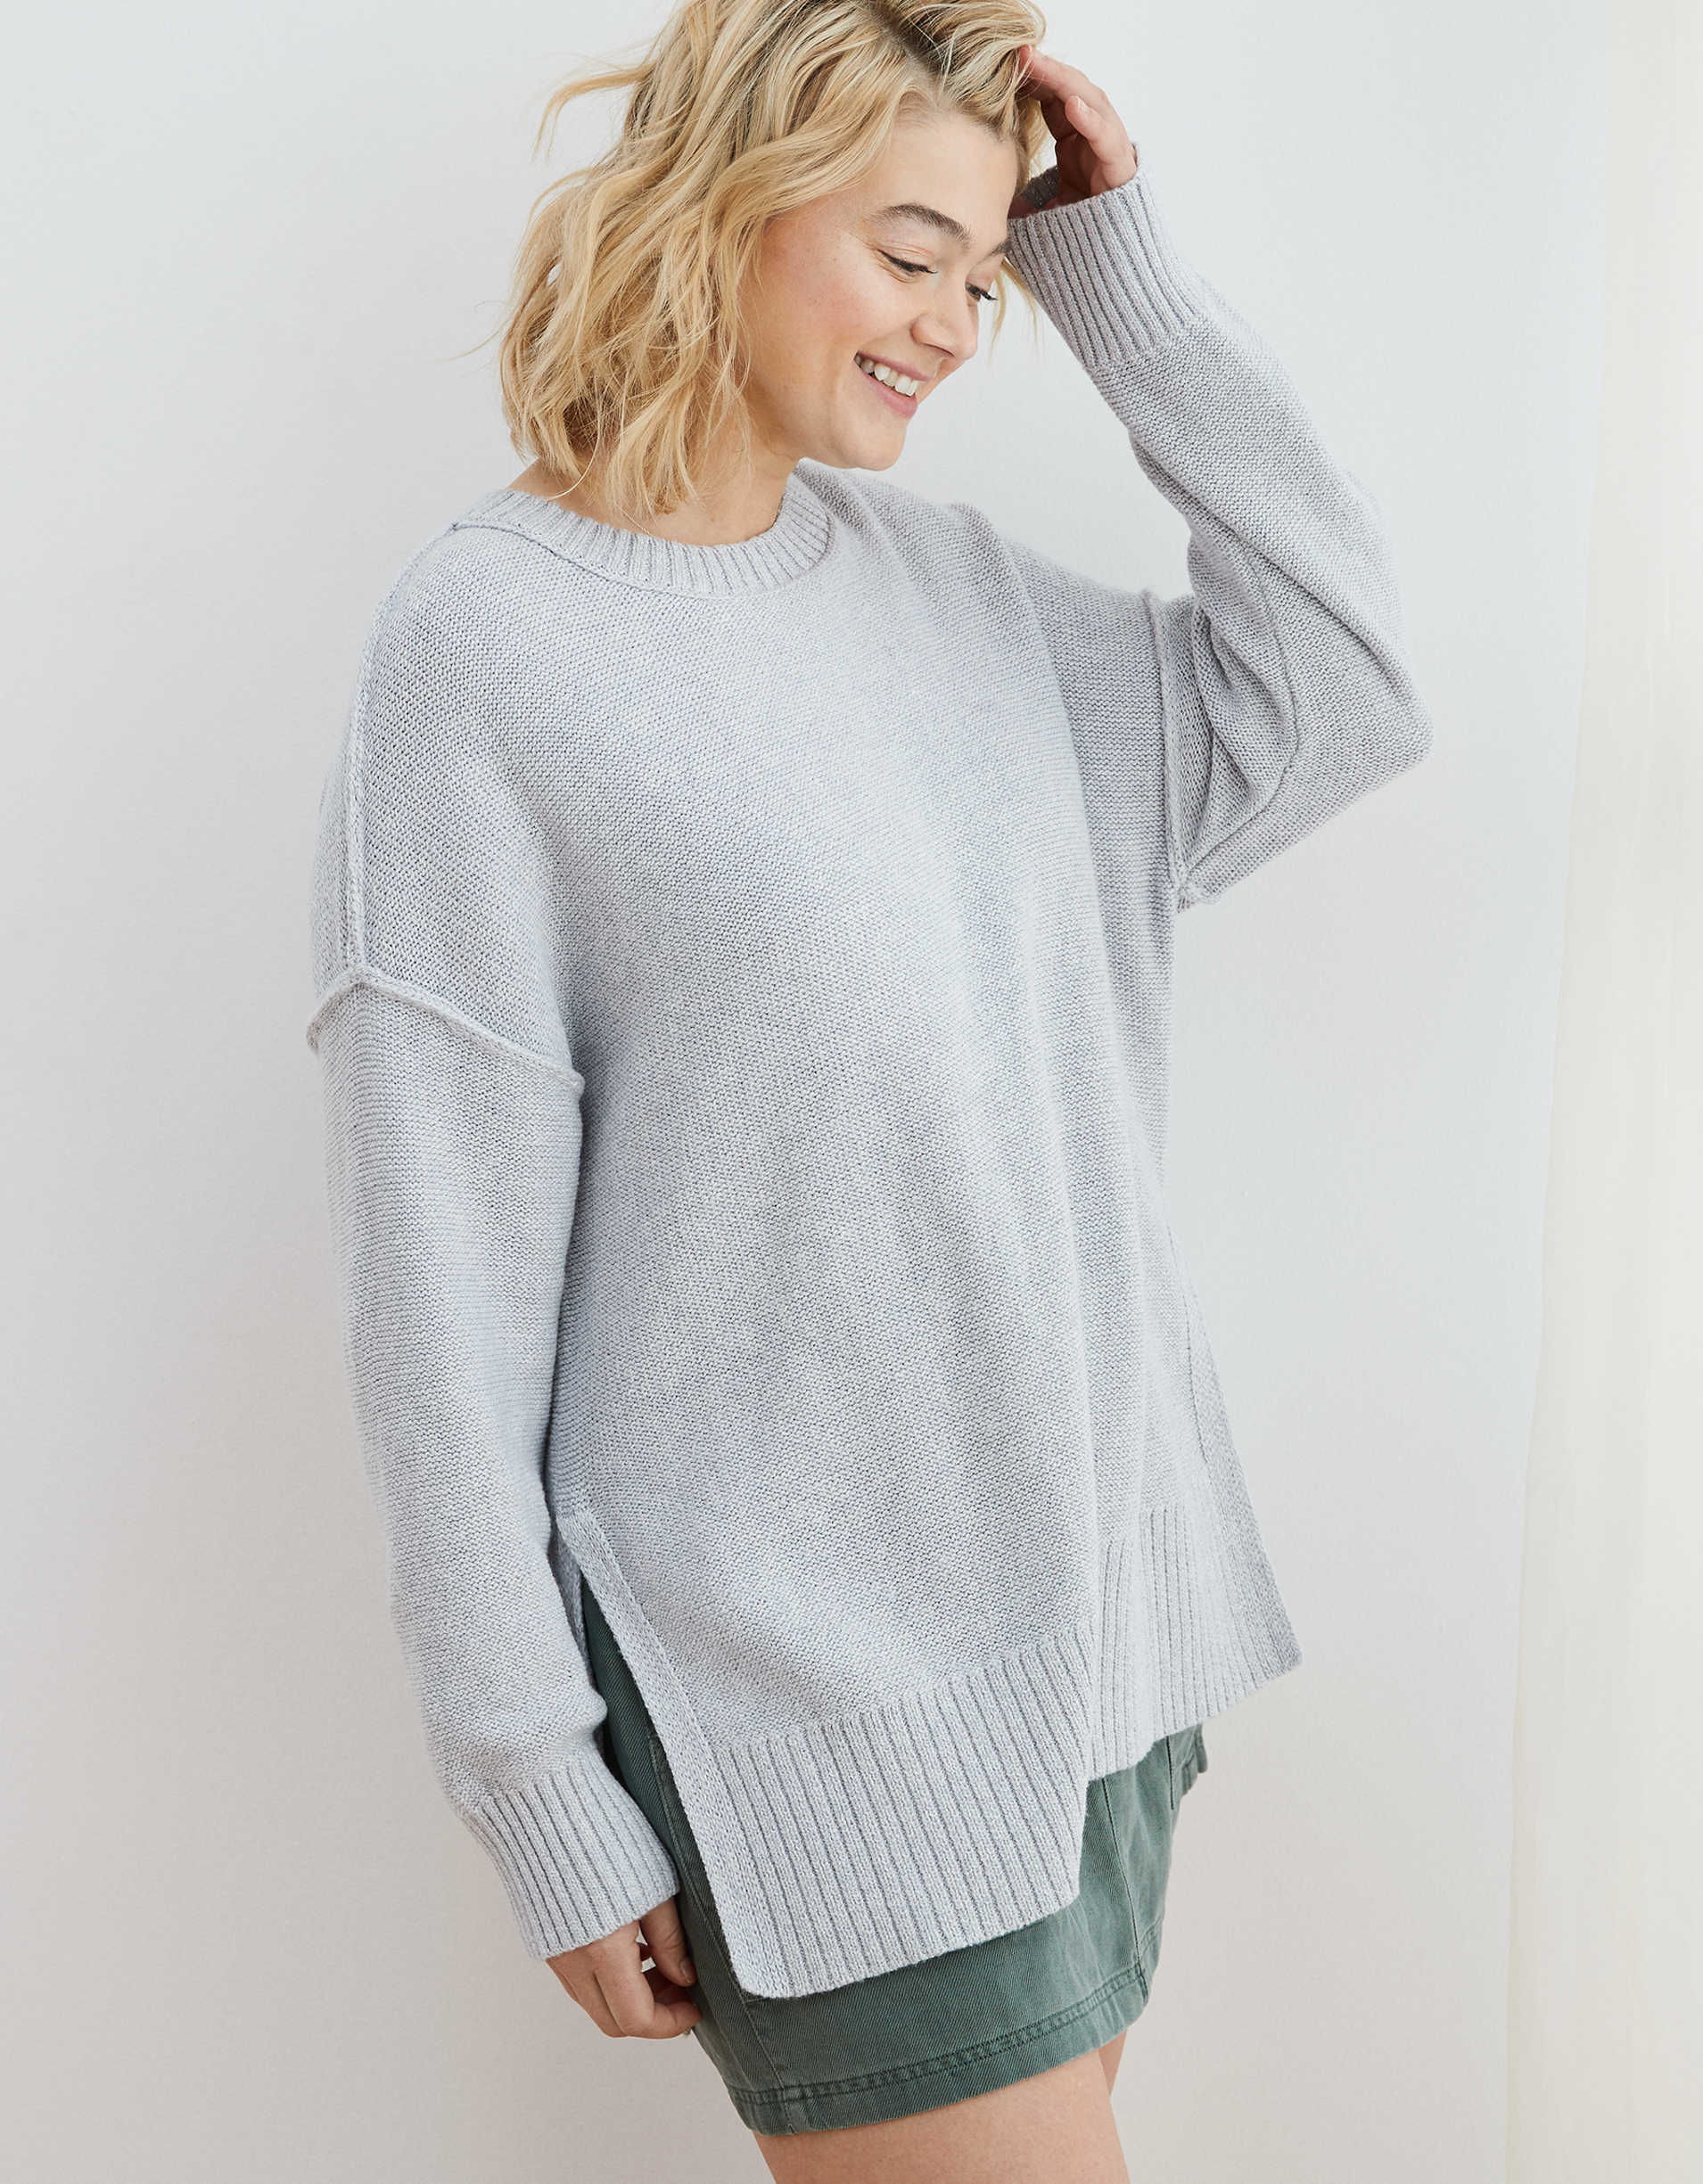 Aerie Desert Oversized Sweater